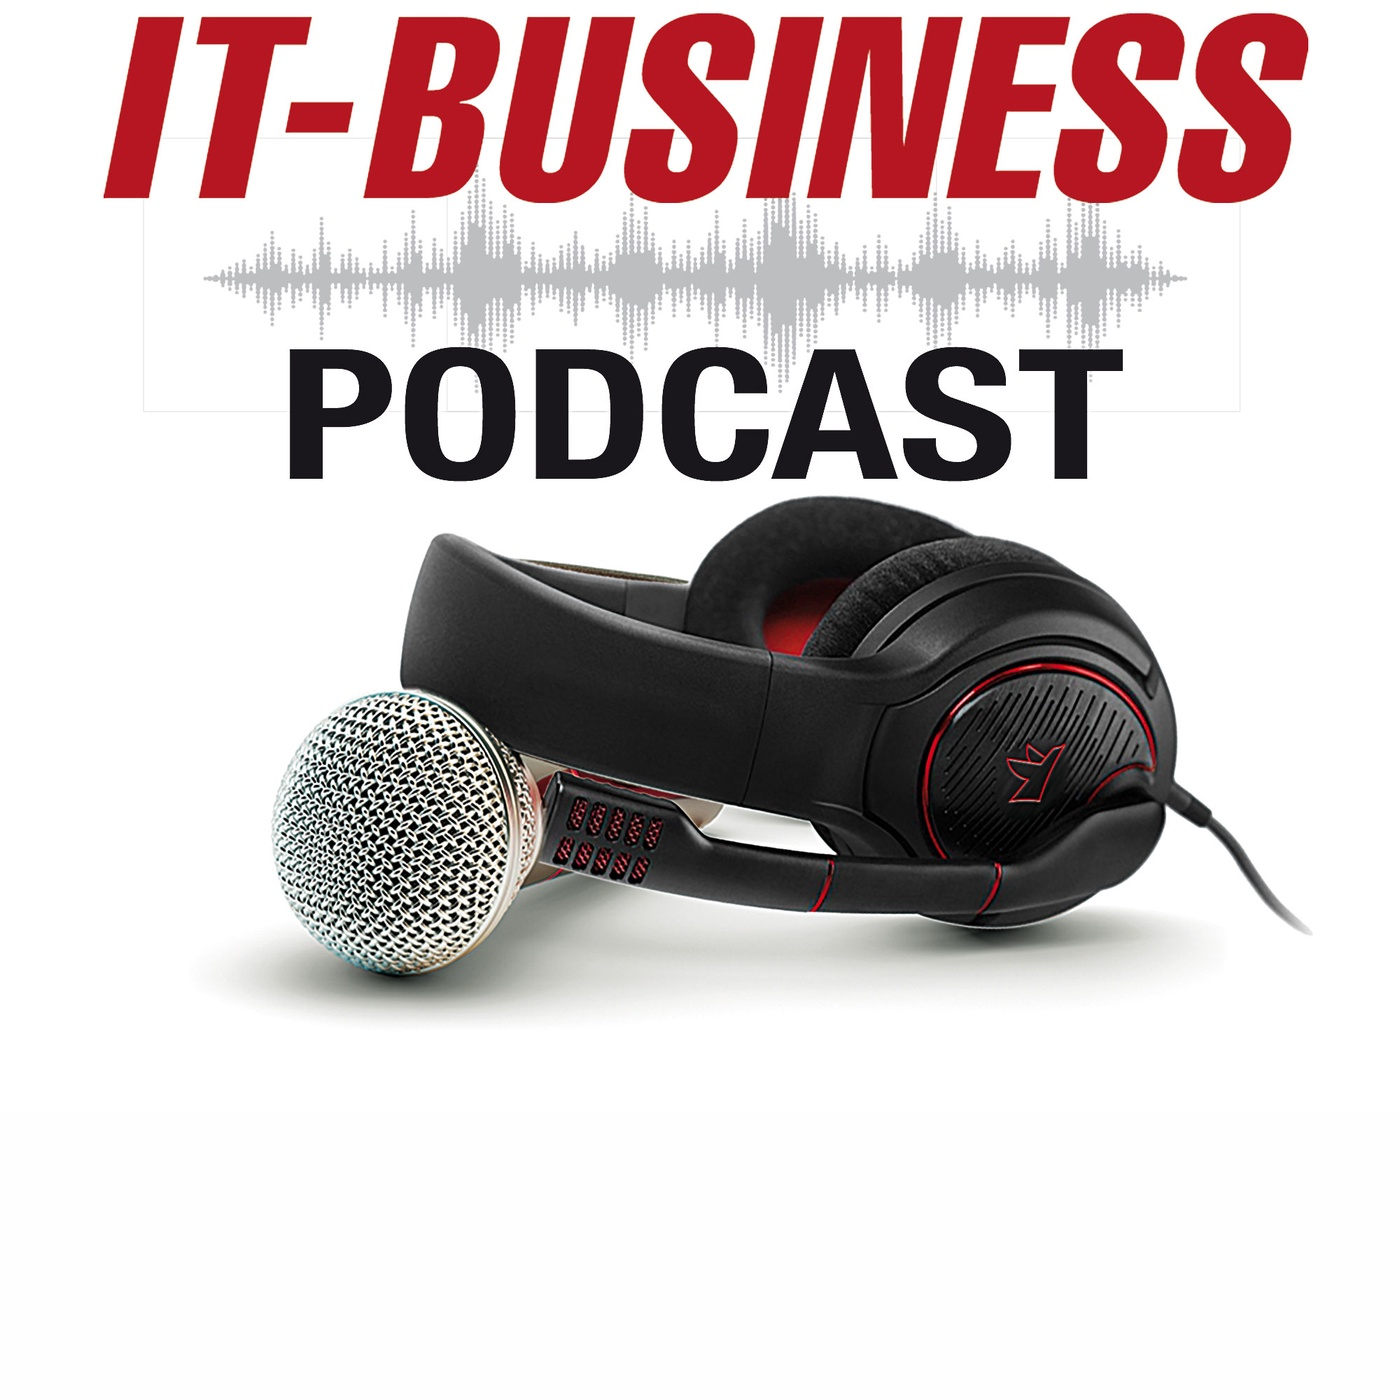 IT-BUSINESS Podcast